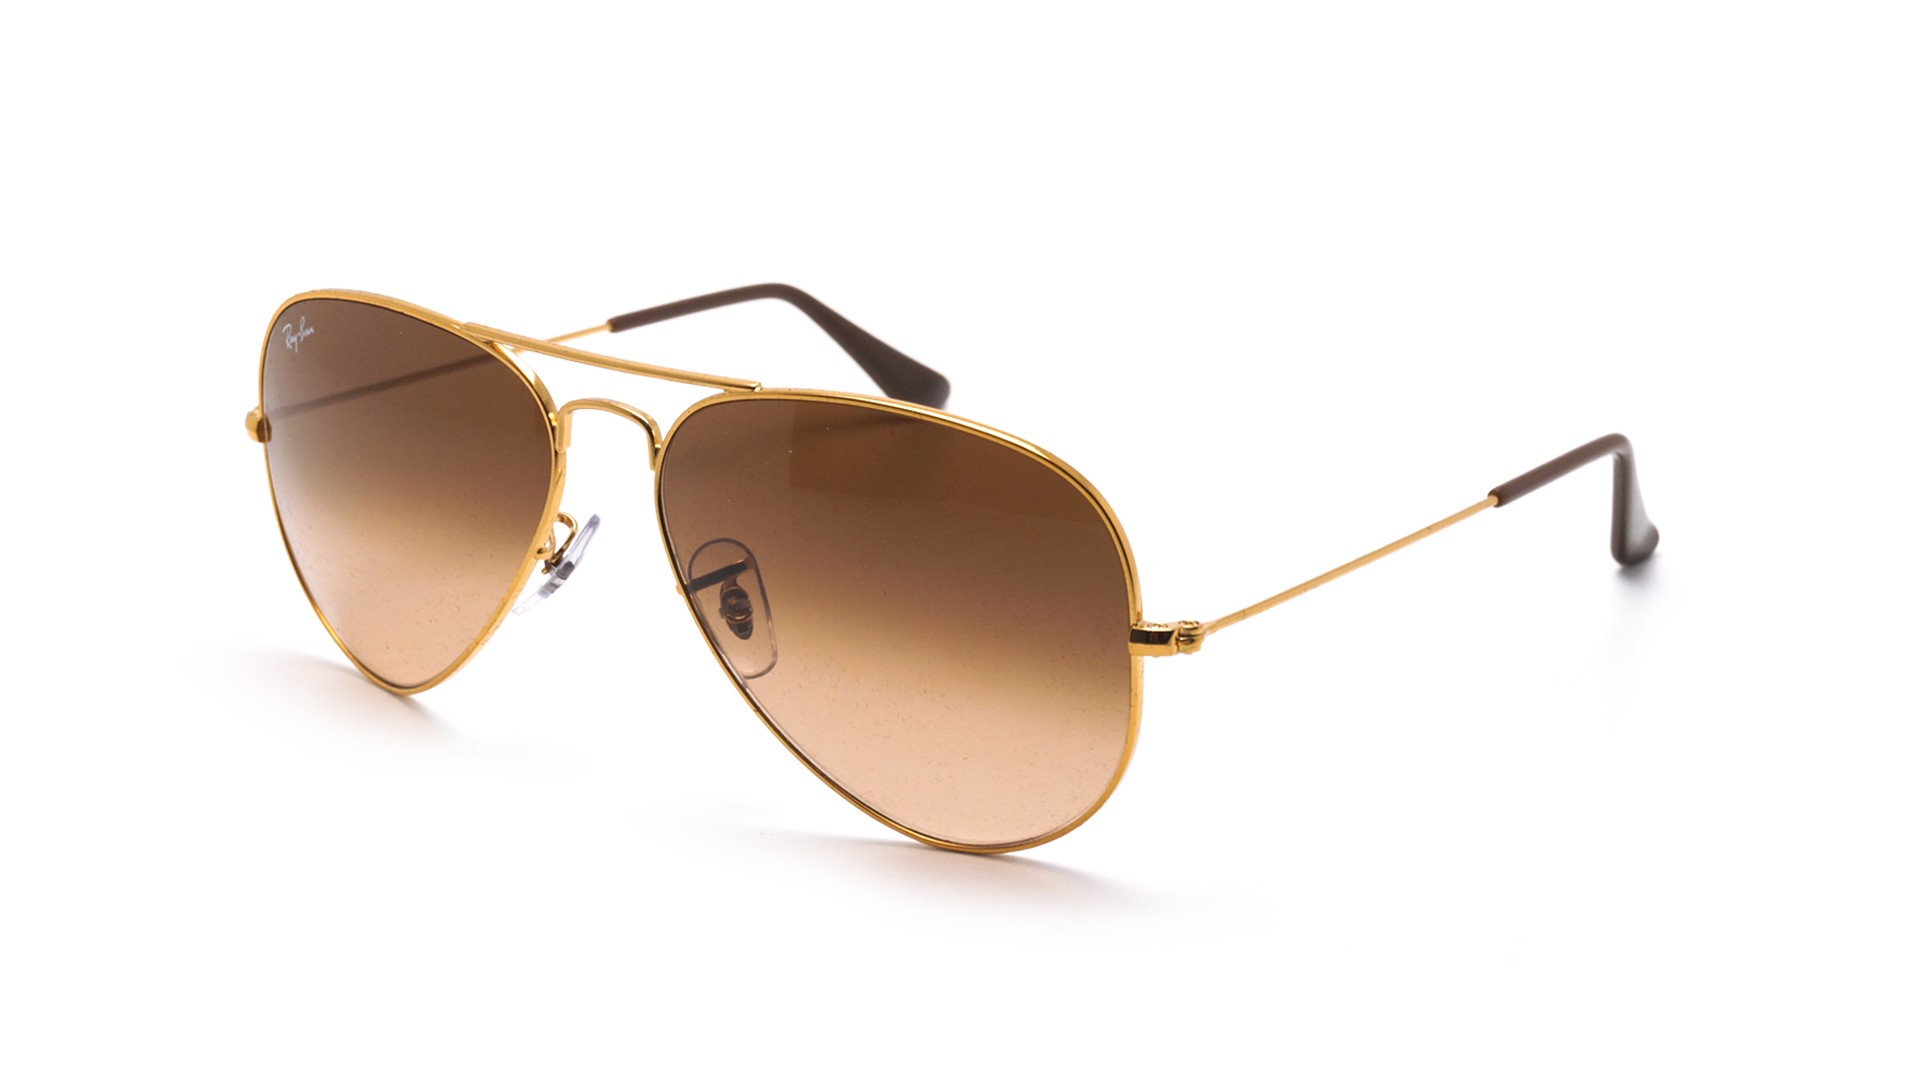 Lunettes de soleil Ray-Ban Aviator Gradient Large metal Or RB3025 9001 A5  58-14 Large Dégradés 56179f876109